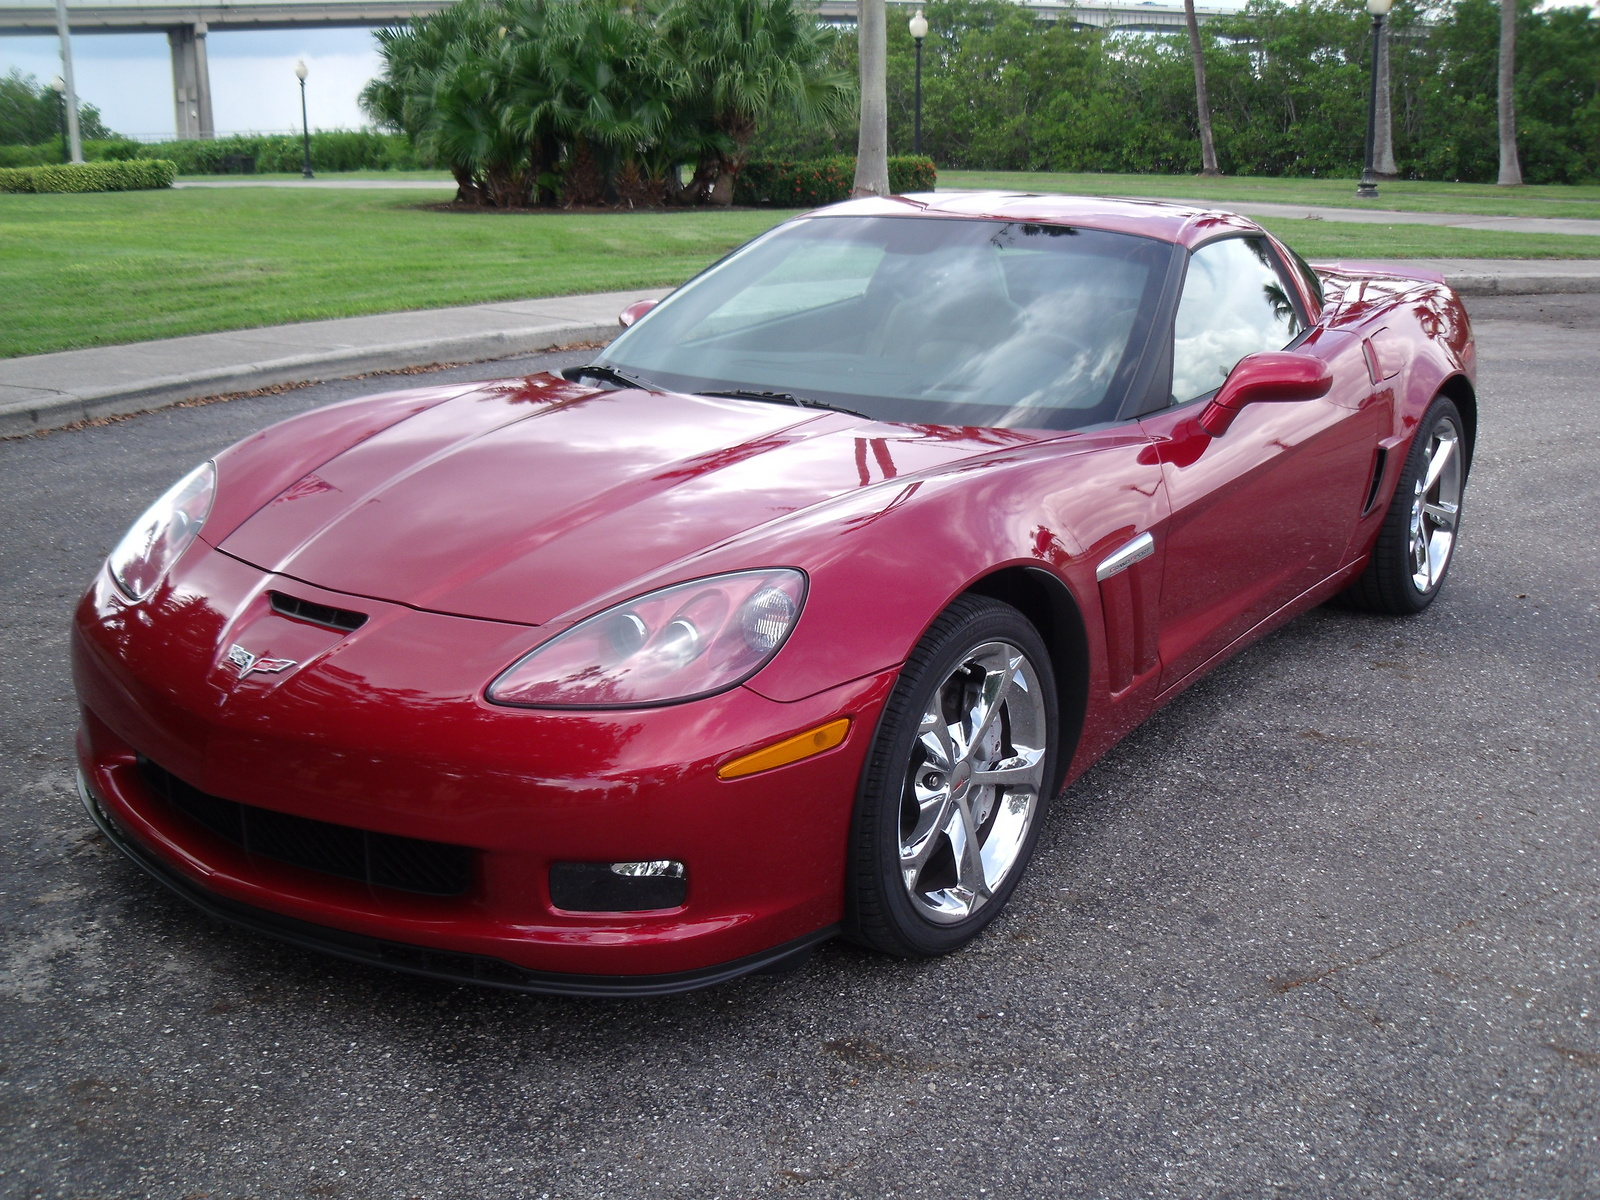 2013 grand sport corvette colors night race blue for sale. Black Bedroom Furniture Sets. Home Design Ideas